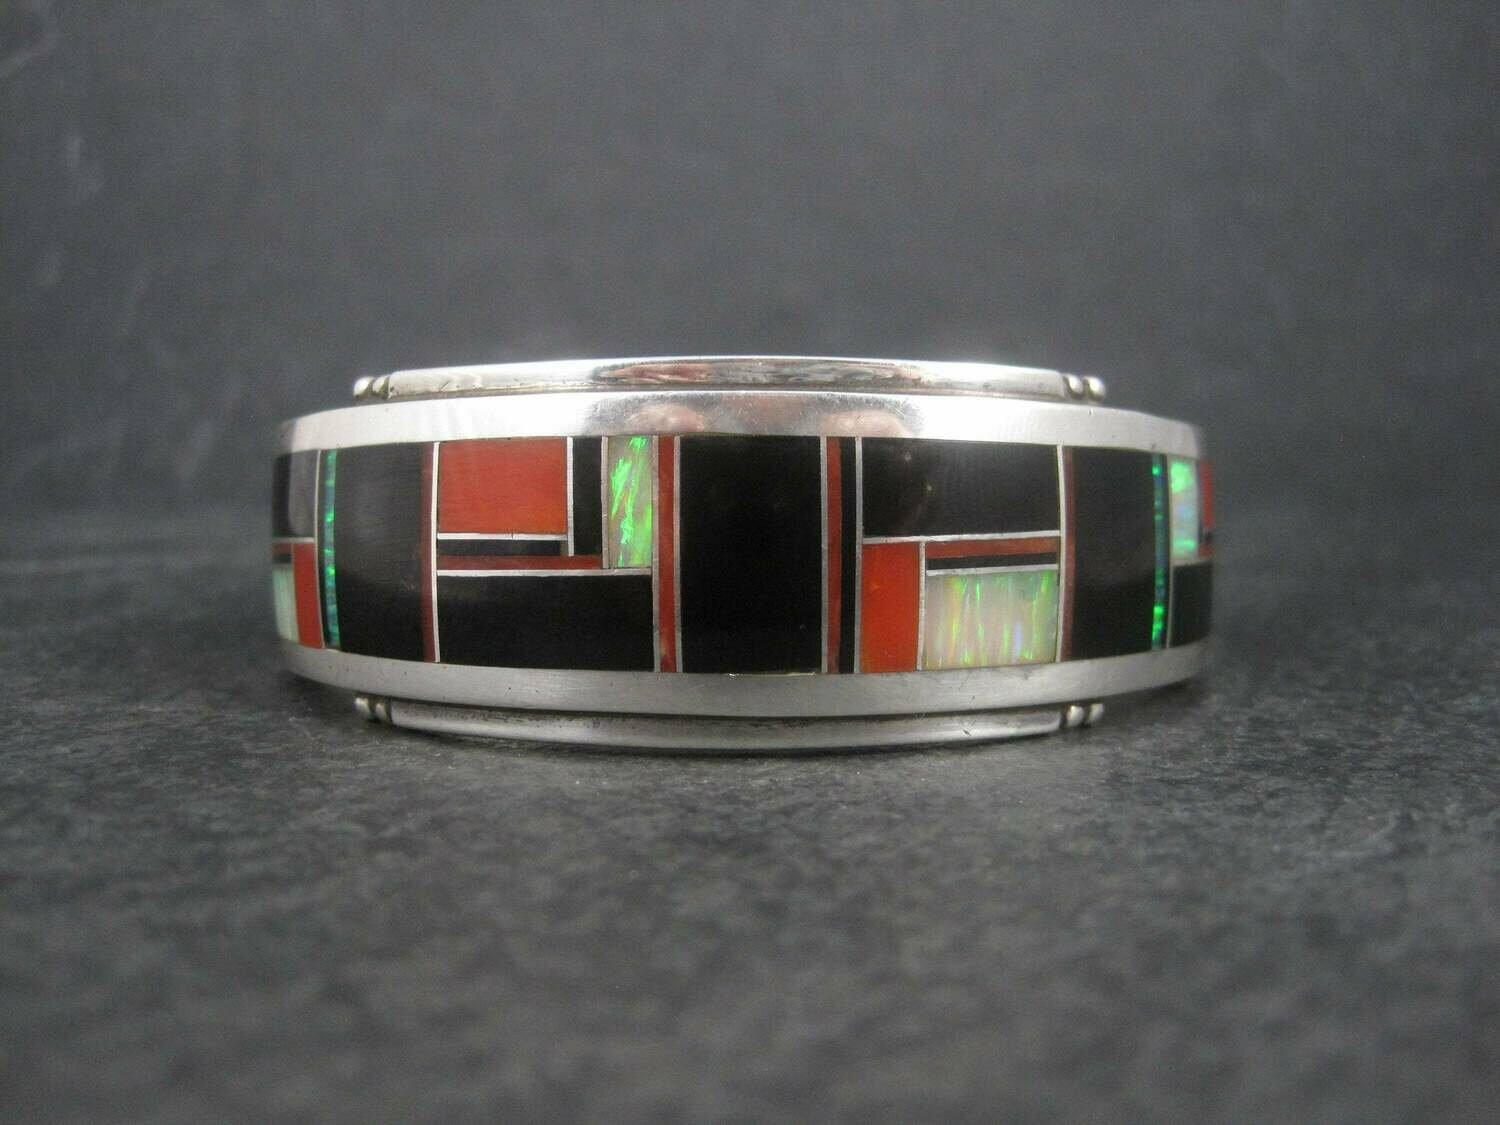 Vintage Southwestern Sterling Coral Onyx Opal Inlay Cuff Bracelet 6 3/8 Inches